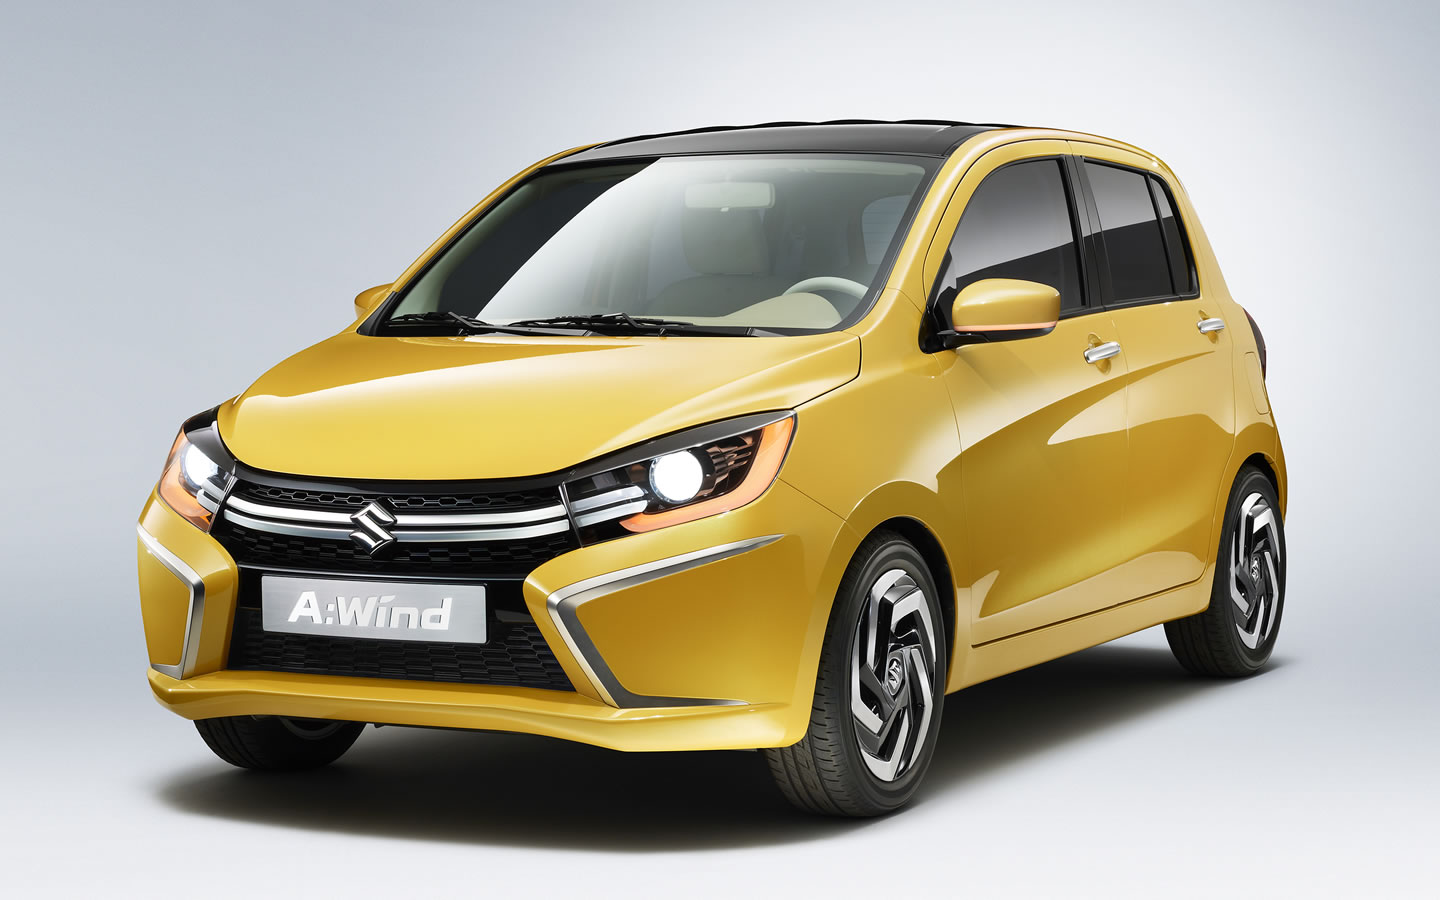 New-Gen Maruti Celerio (YNC) Likely To Be Based On Heartect K Platform